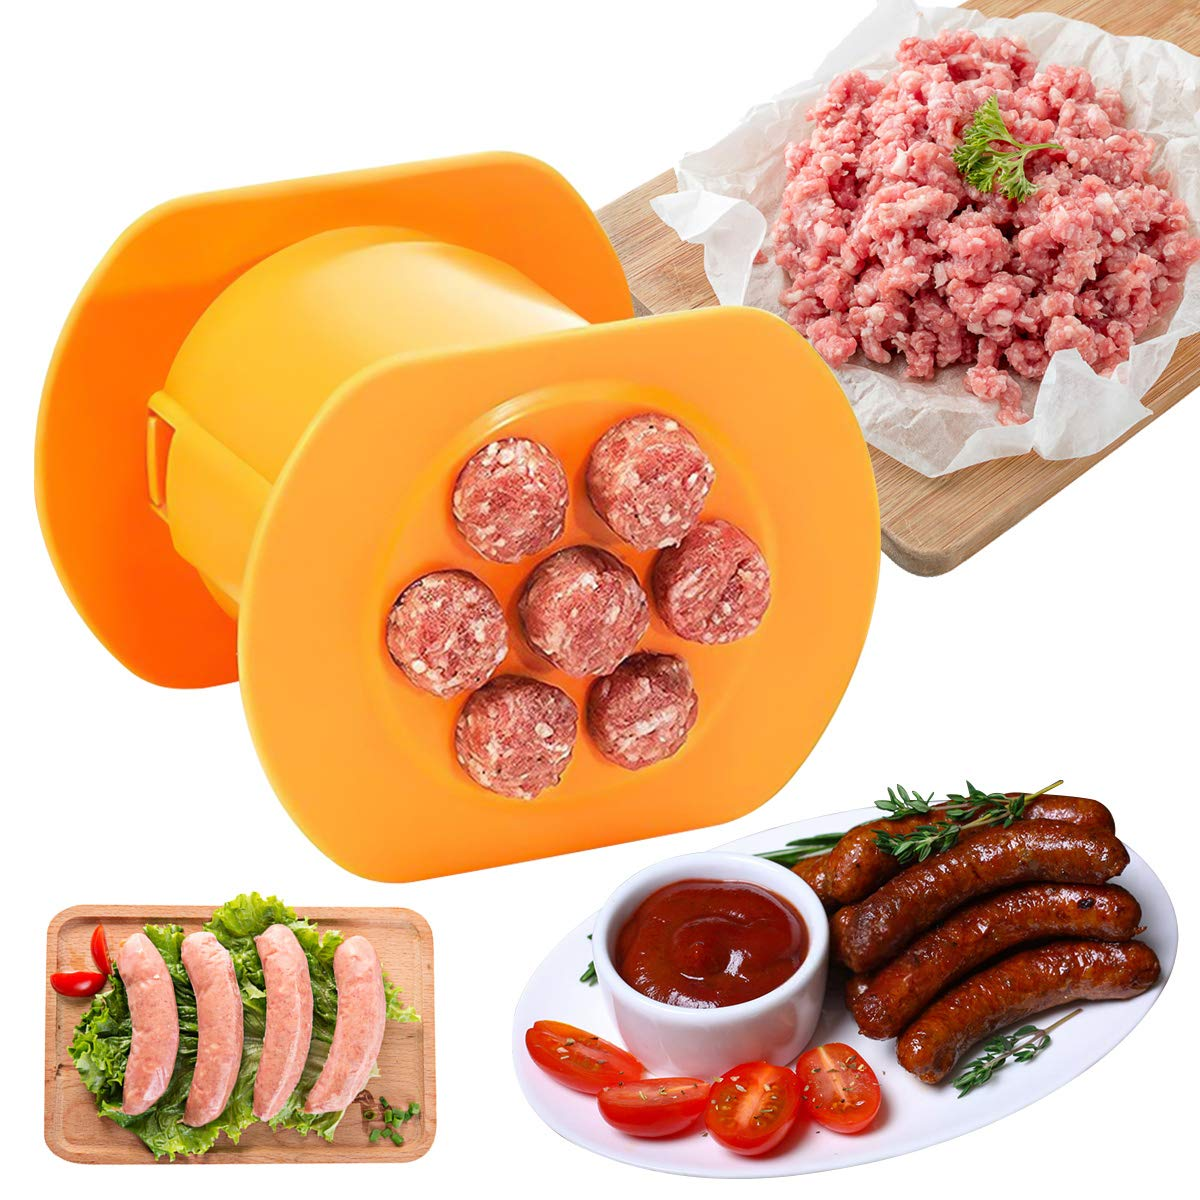 One Press Cevapcici Sausage Maker 7 Sausages in One Press Manual Hot Dog Maker Non Stick Household Barbecue Grilling Molds - BBQ Grill Accessories - Homemade Sausage Making Tool - Easy to Use (1pc)